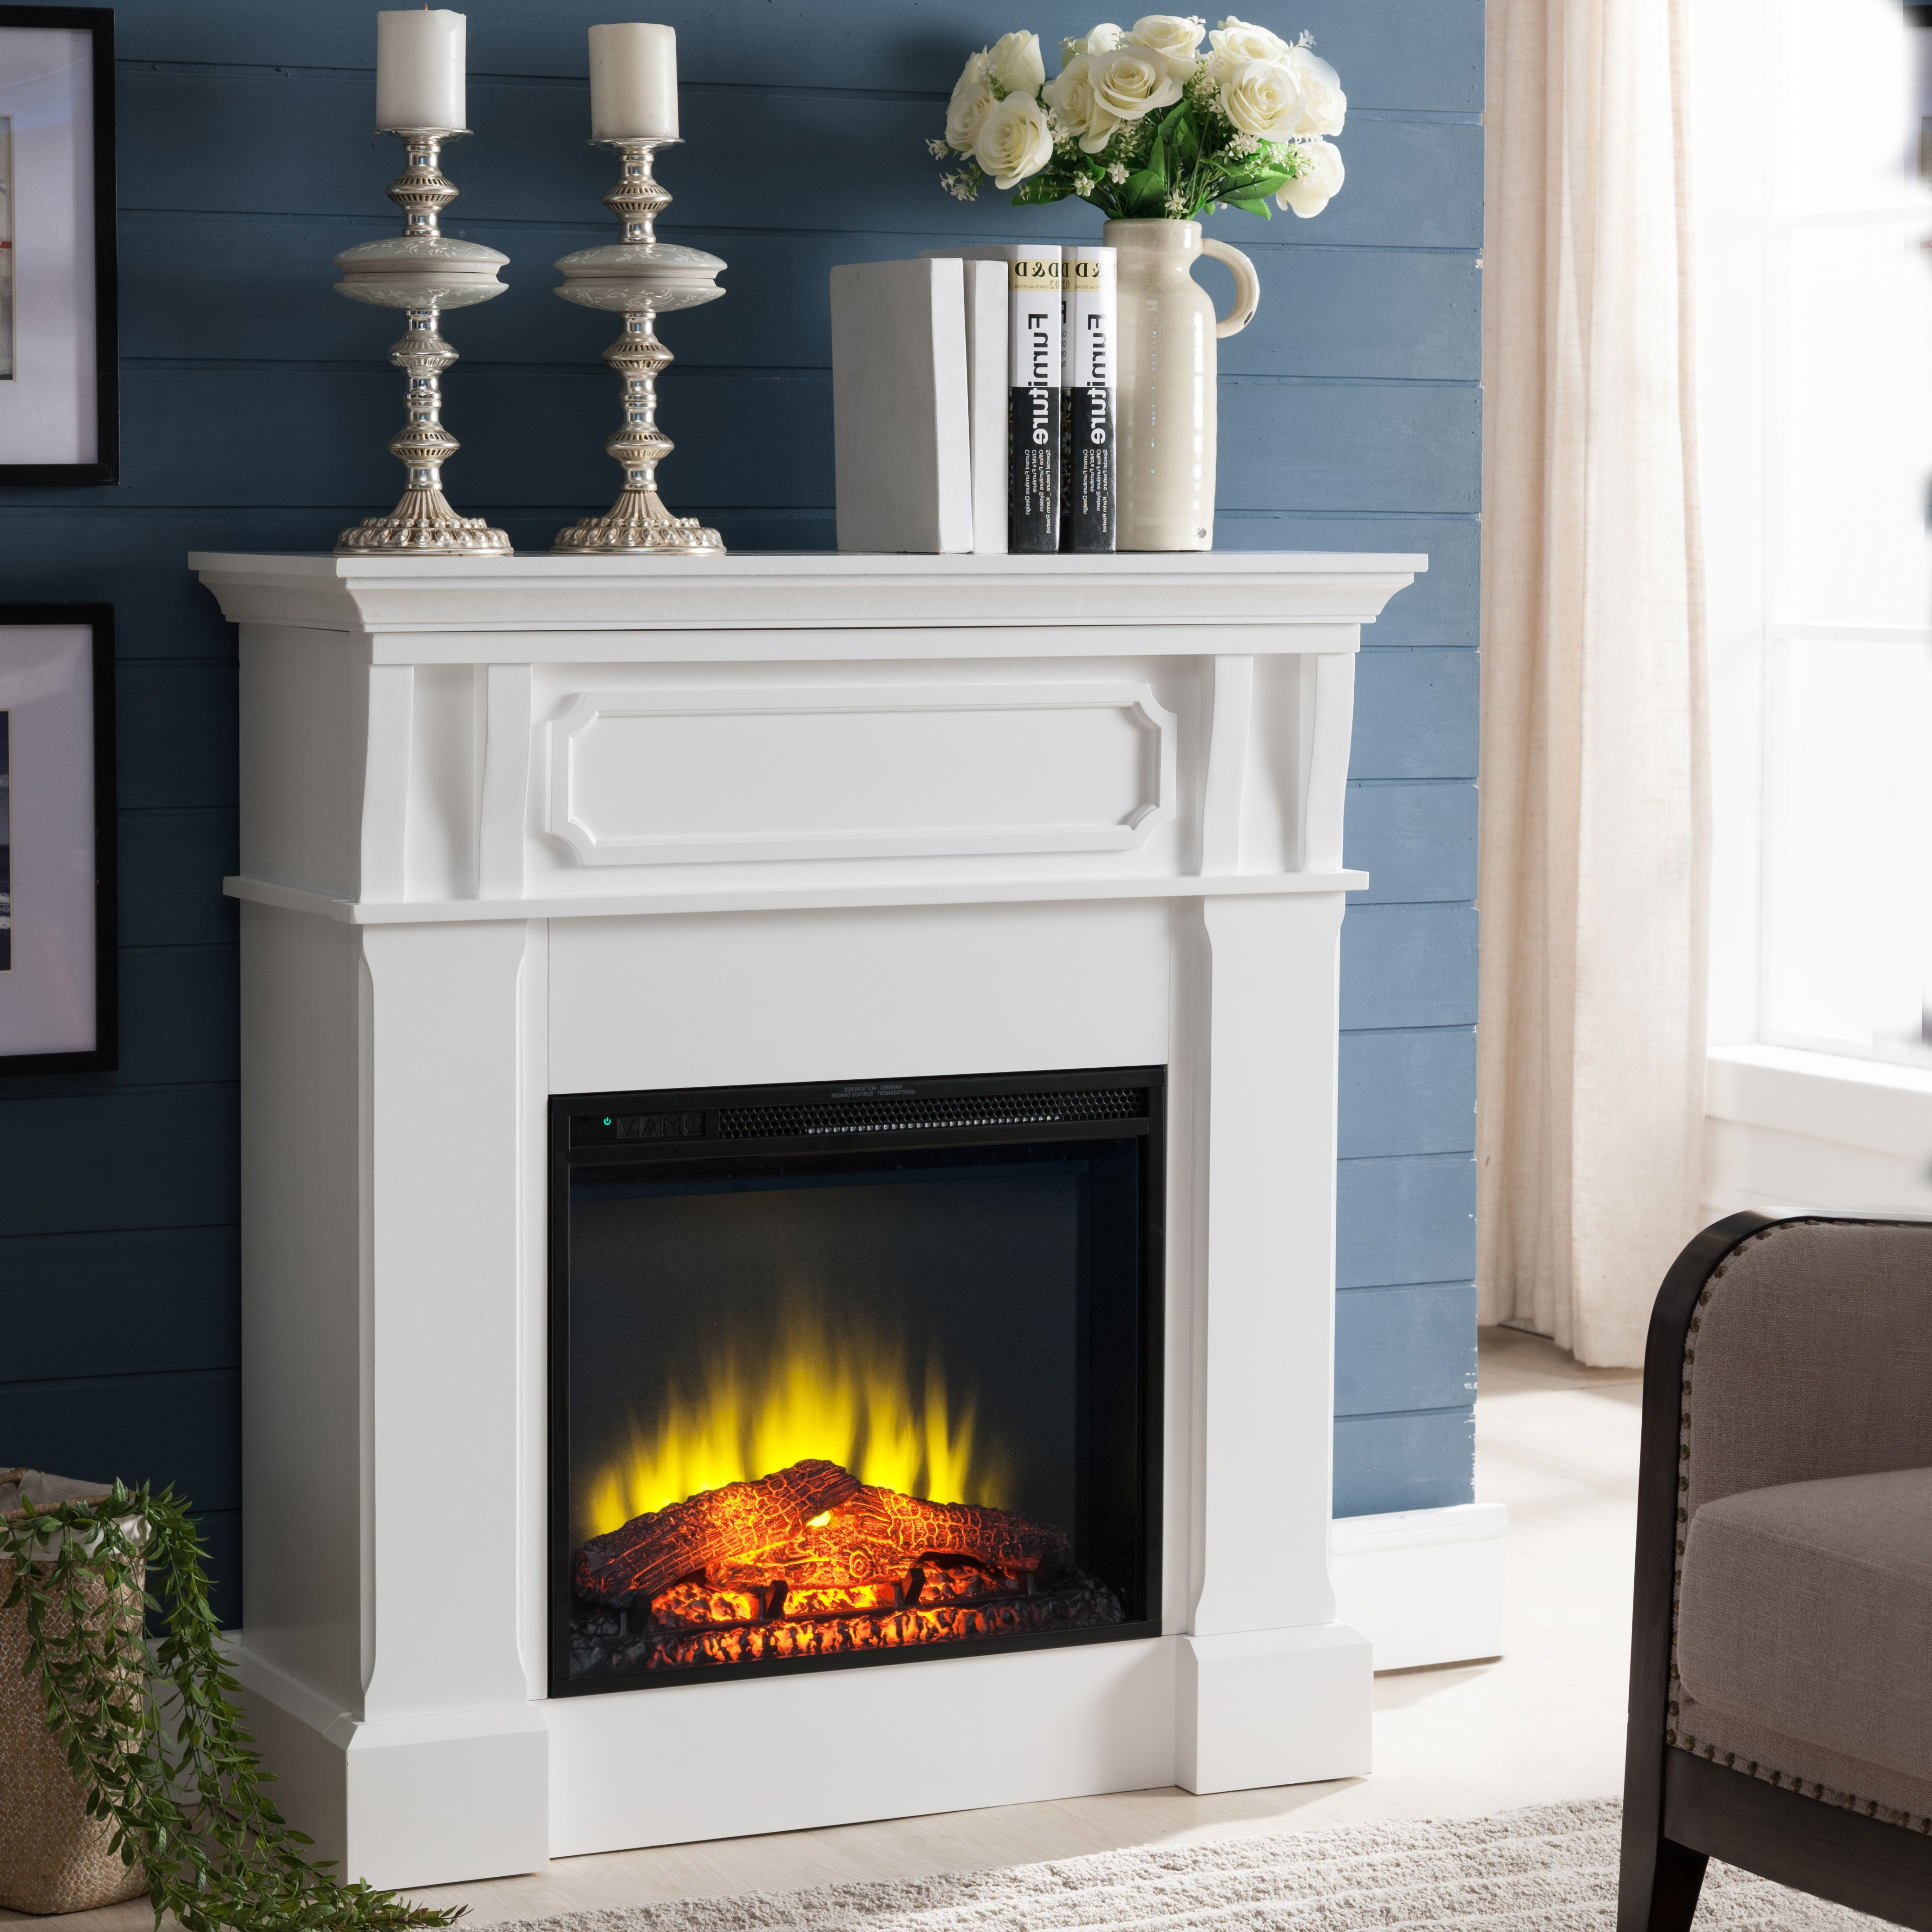 Prokonian Free Stand Electric Fireplace With 40 Mantel White Walmart Com Free Standing Electric Fireplace Electric Fireplace Heater Electric Fireplace